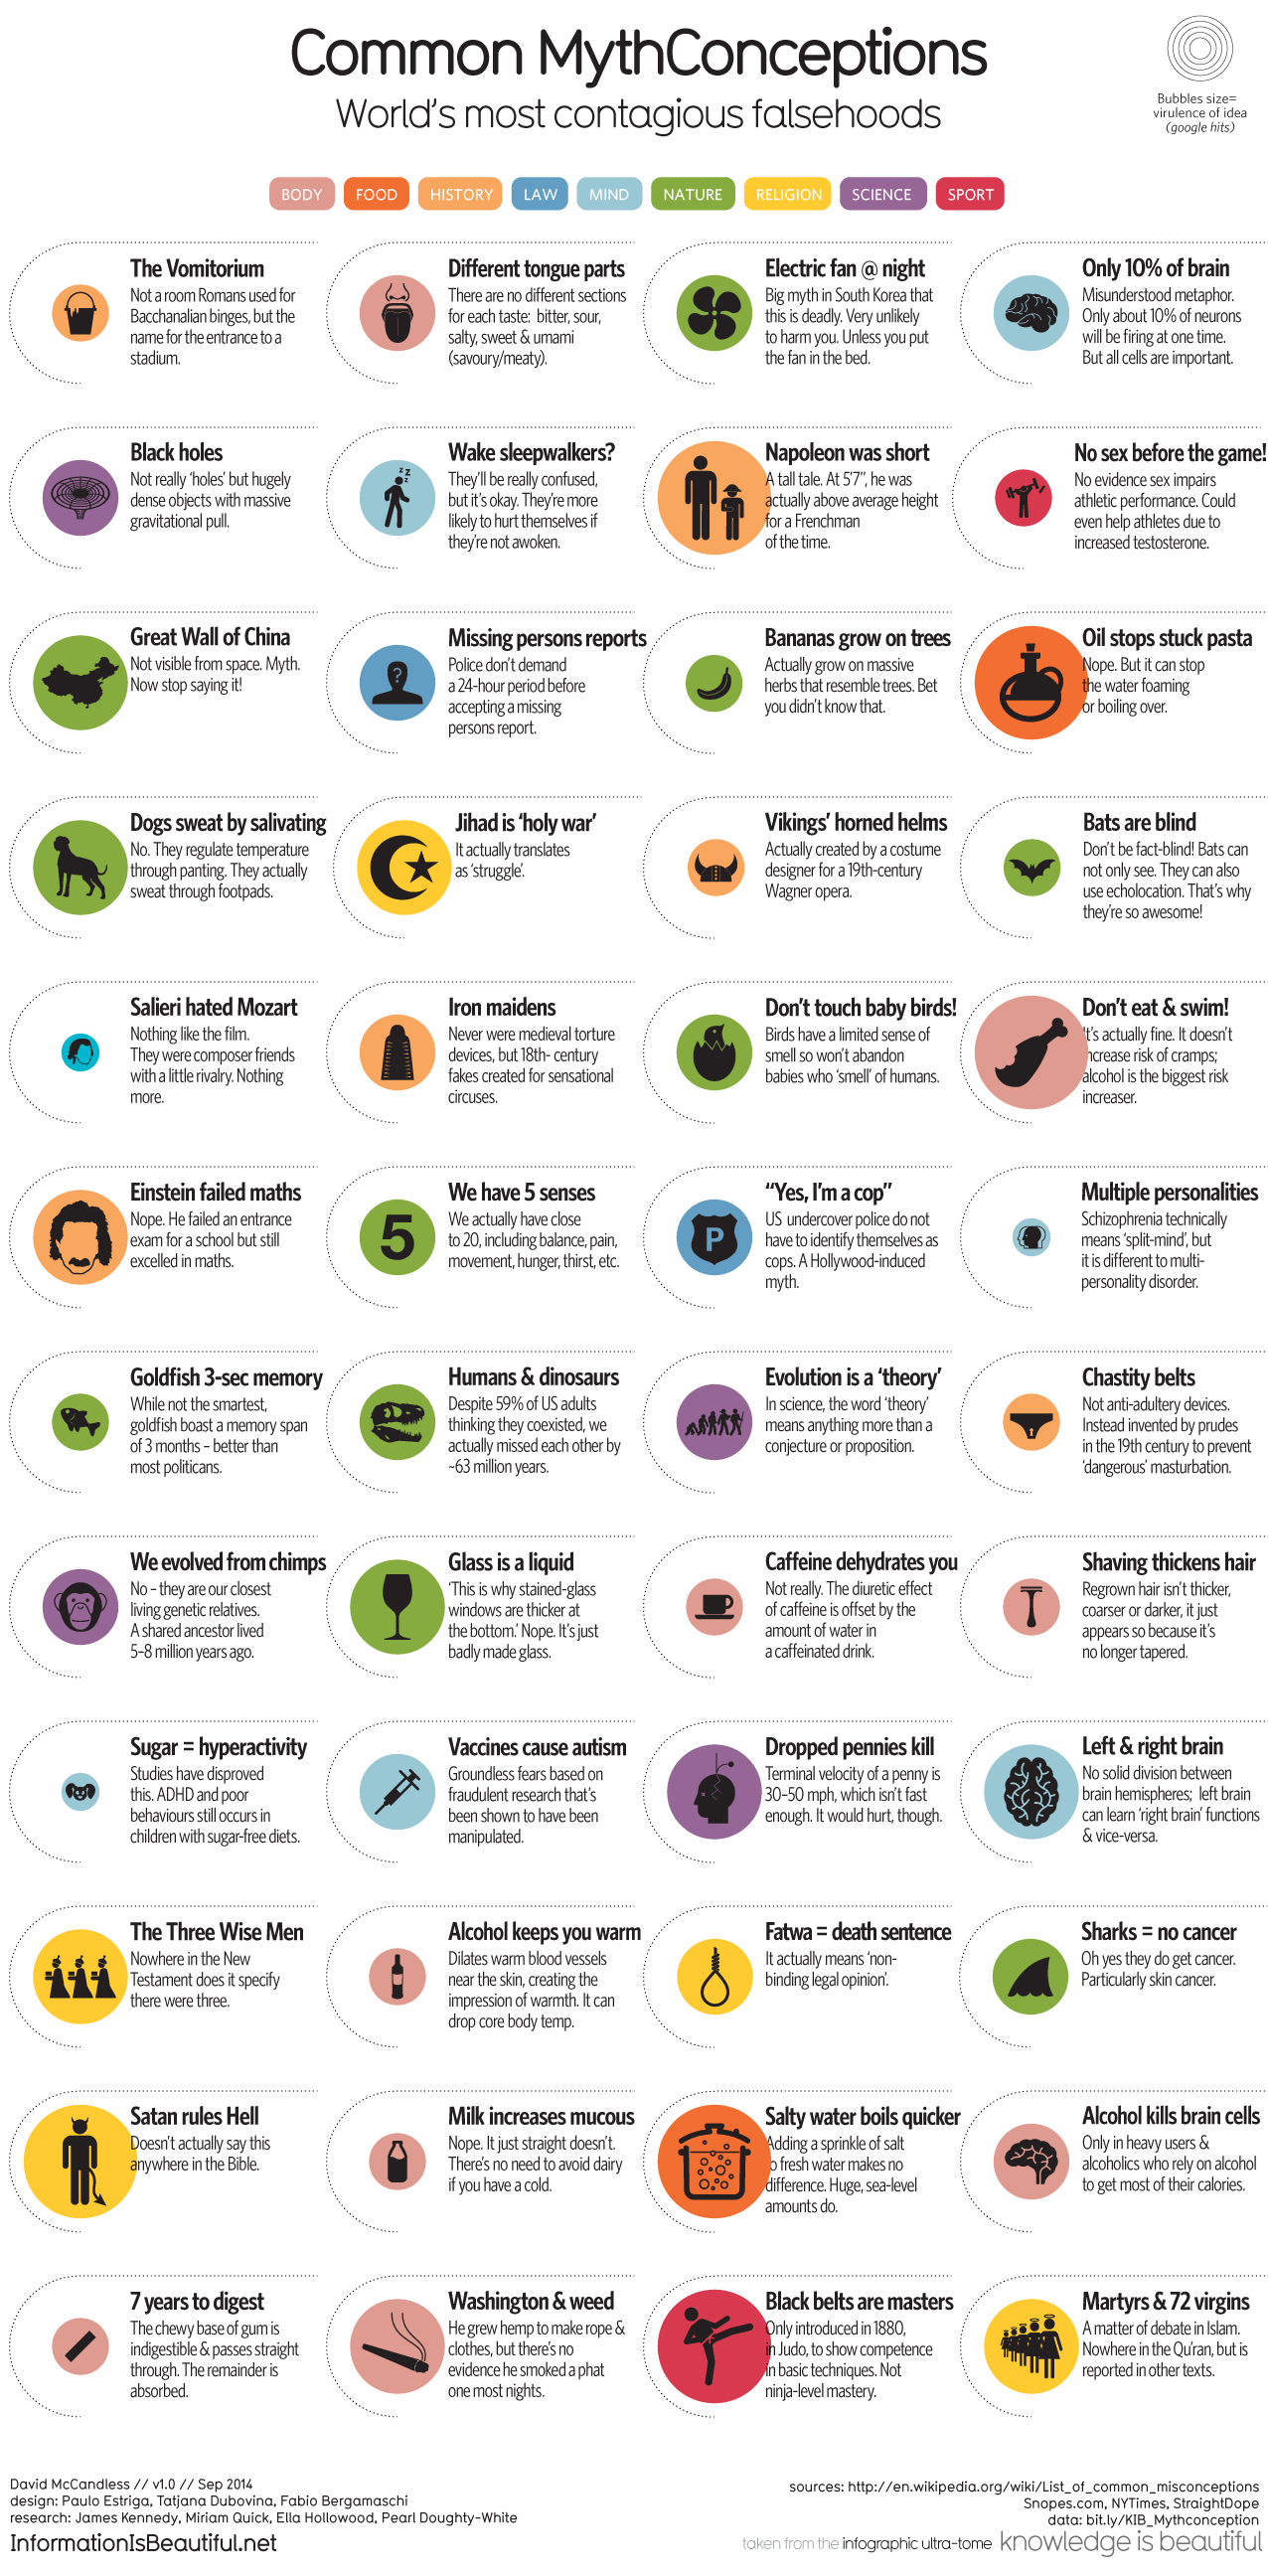 1276_common_mythconceptions_051014